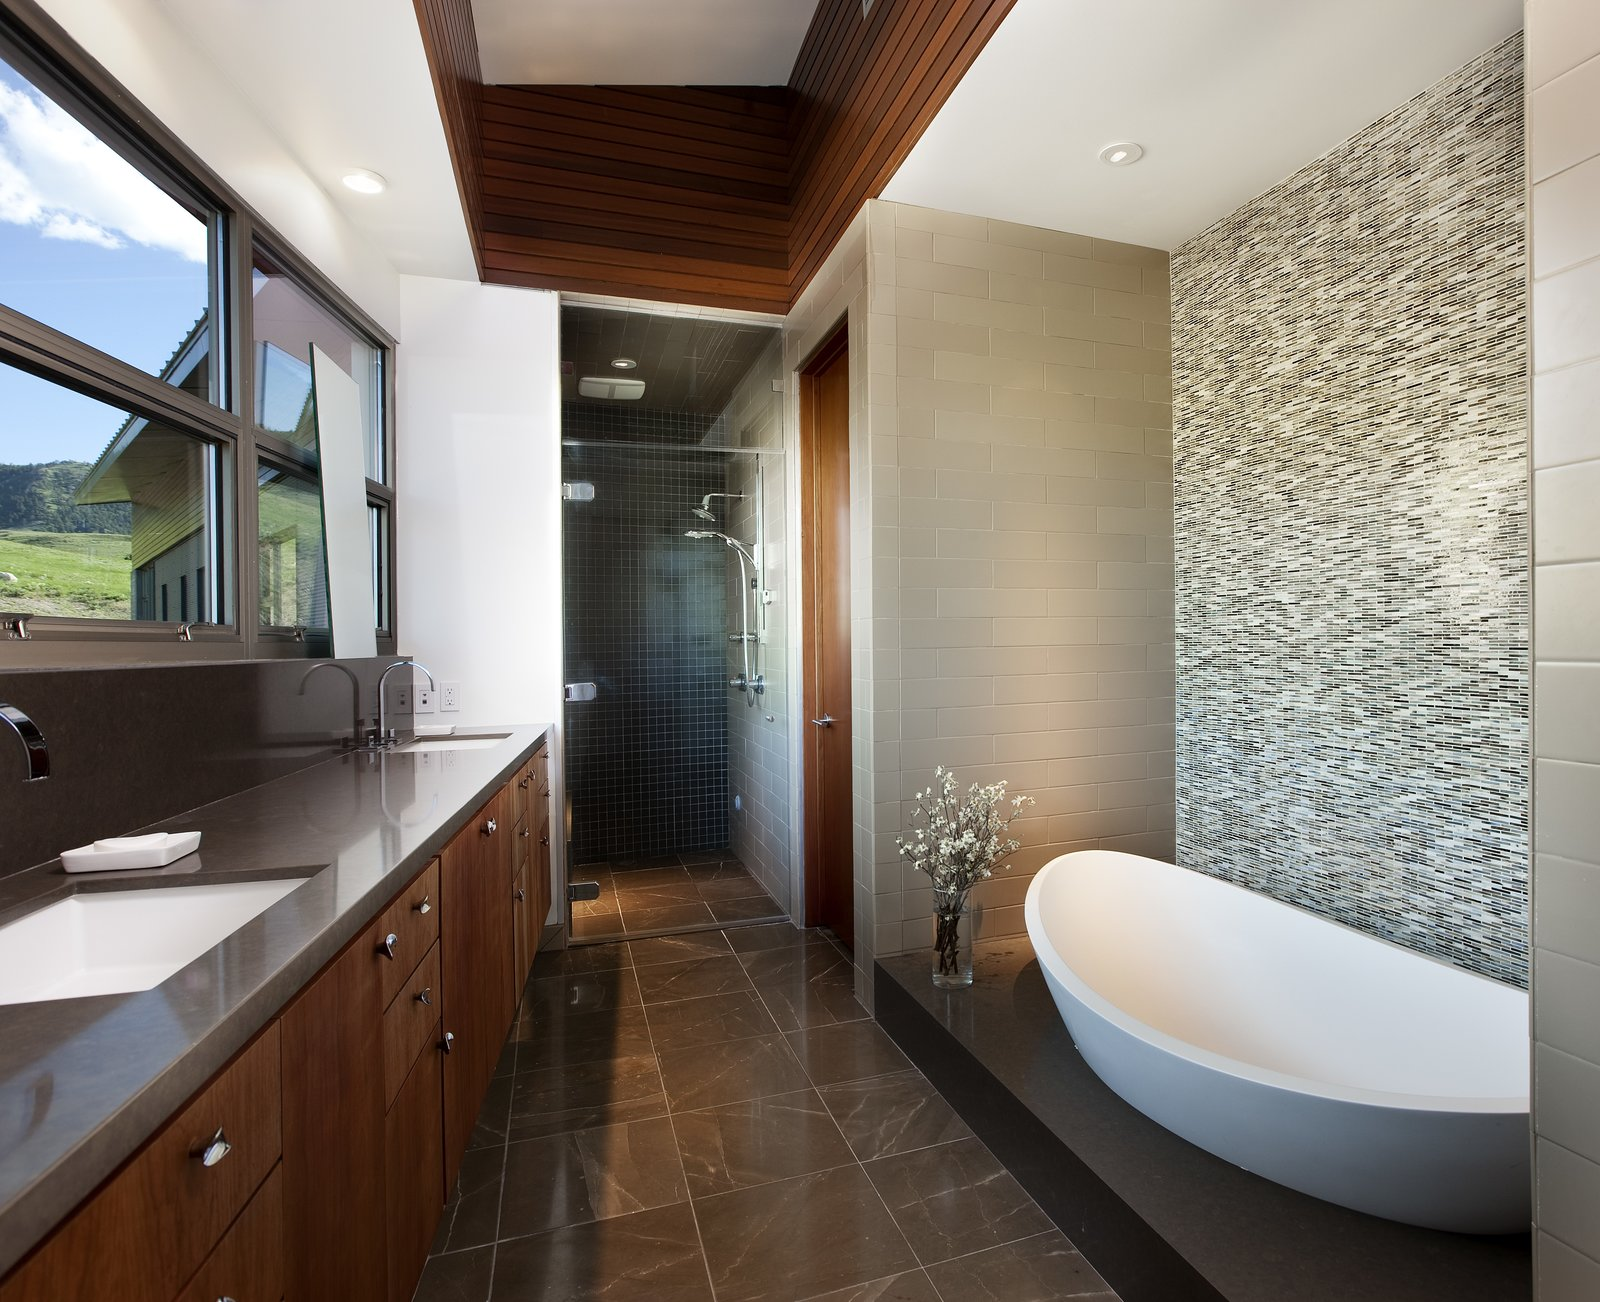 Redwood paneling is also seen in the master bathroom, complimenting the cool-toned mosaic tiles.   Casper Residence by Abramson Teiger Architects